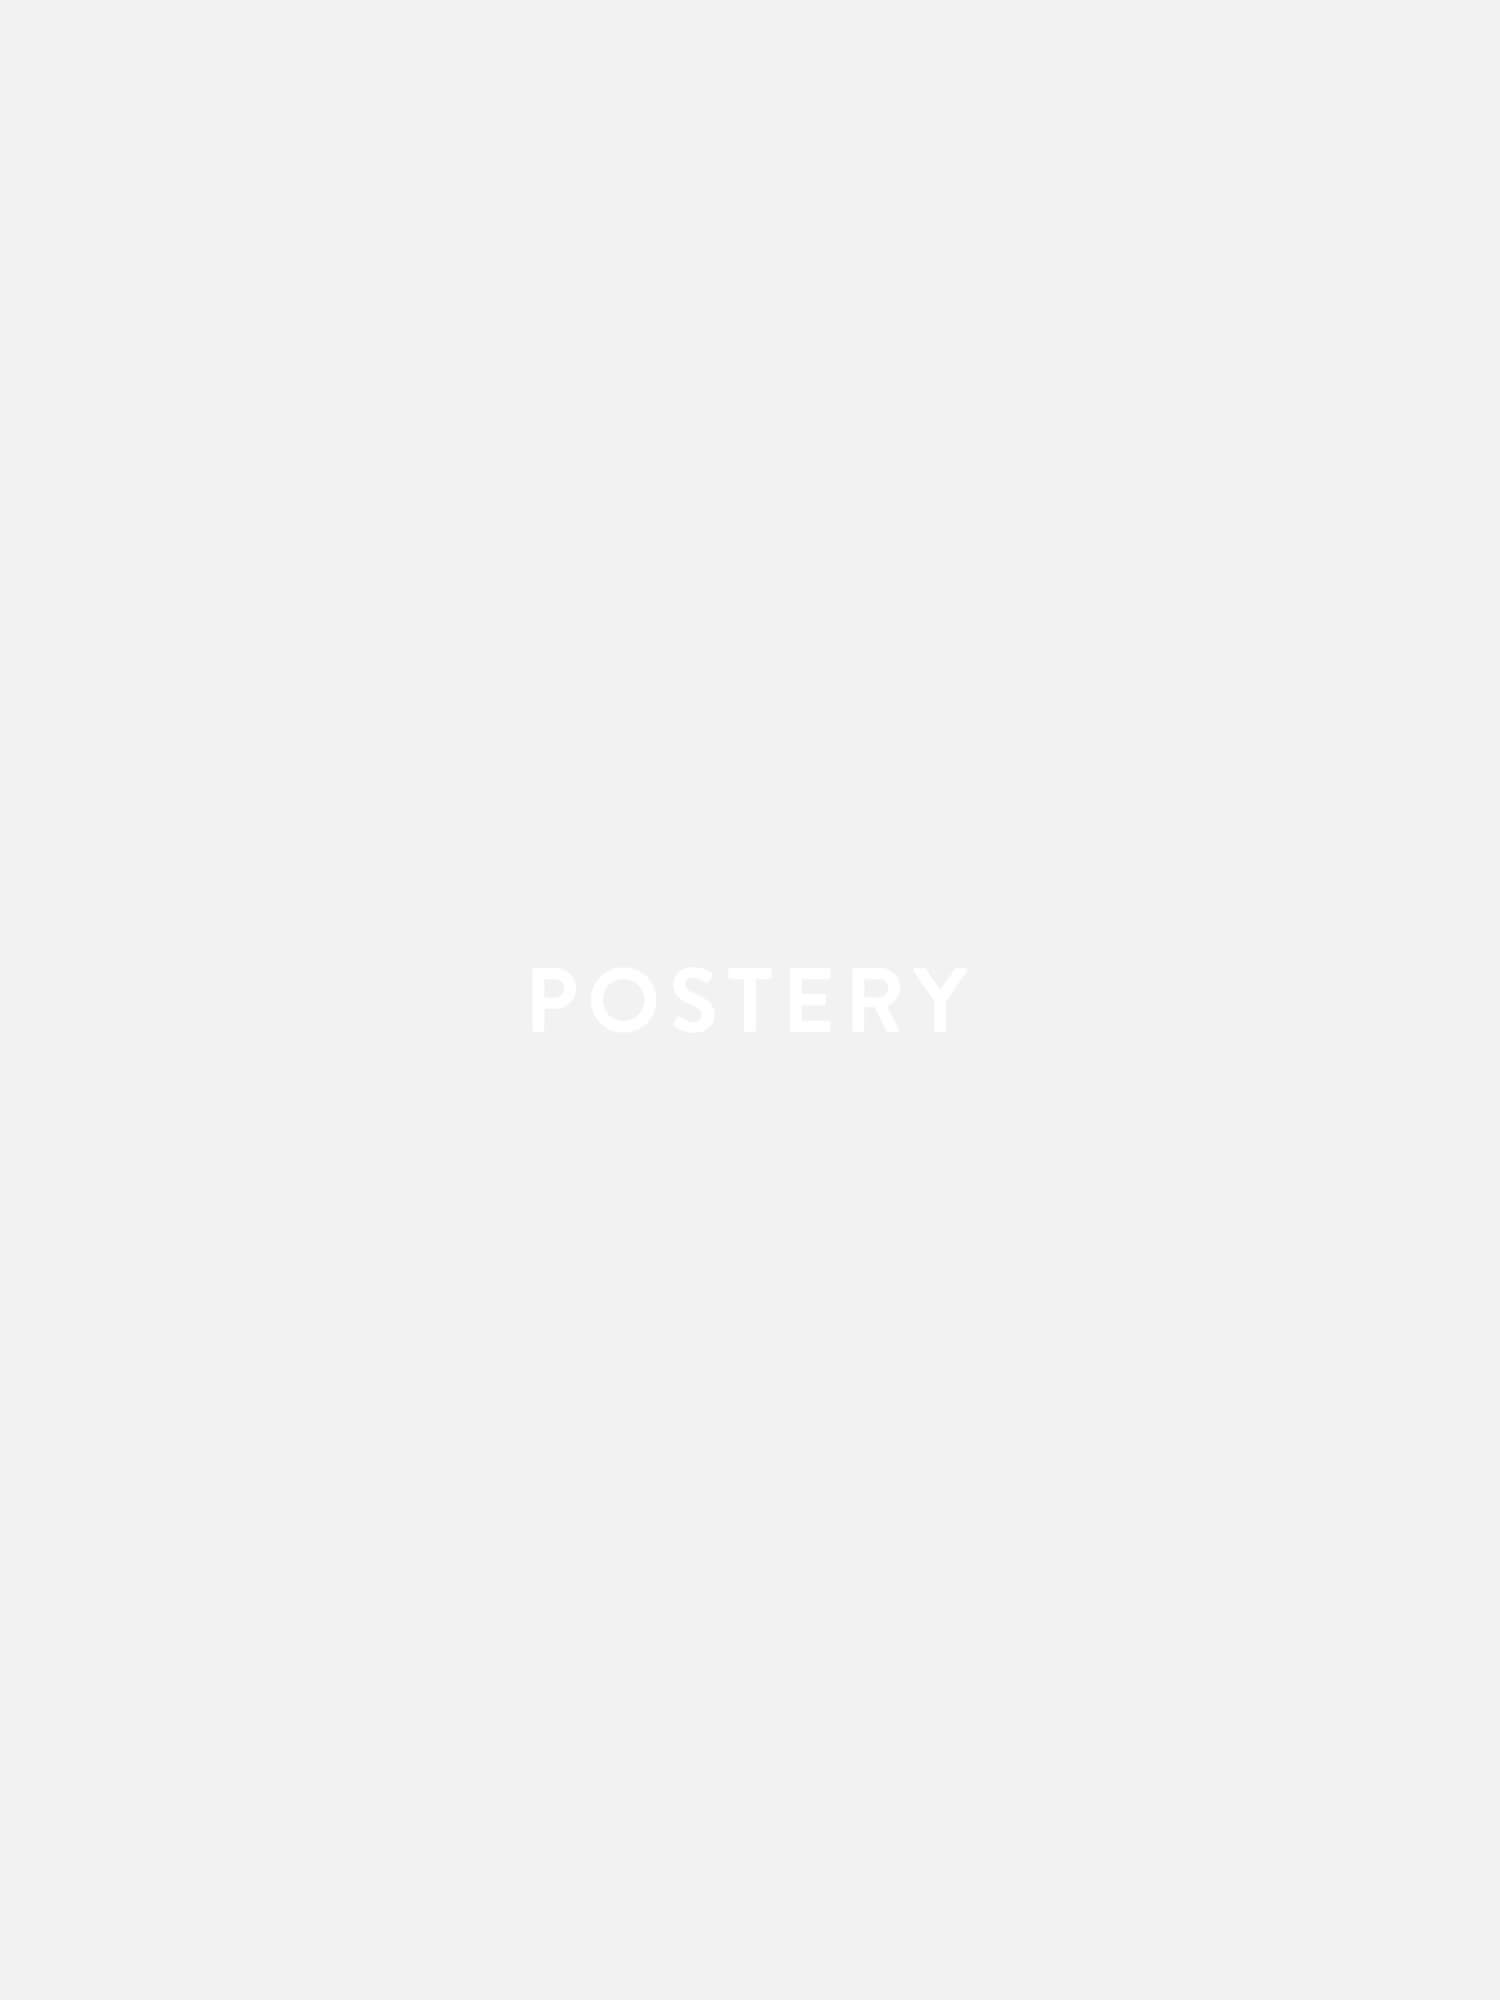 Beach Sign Poster